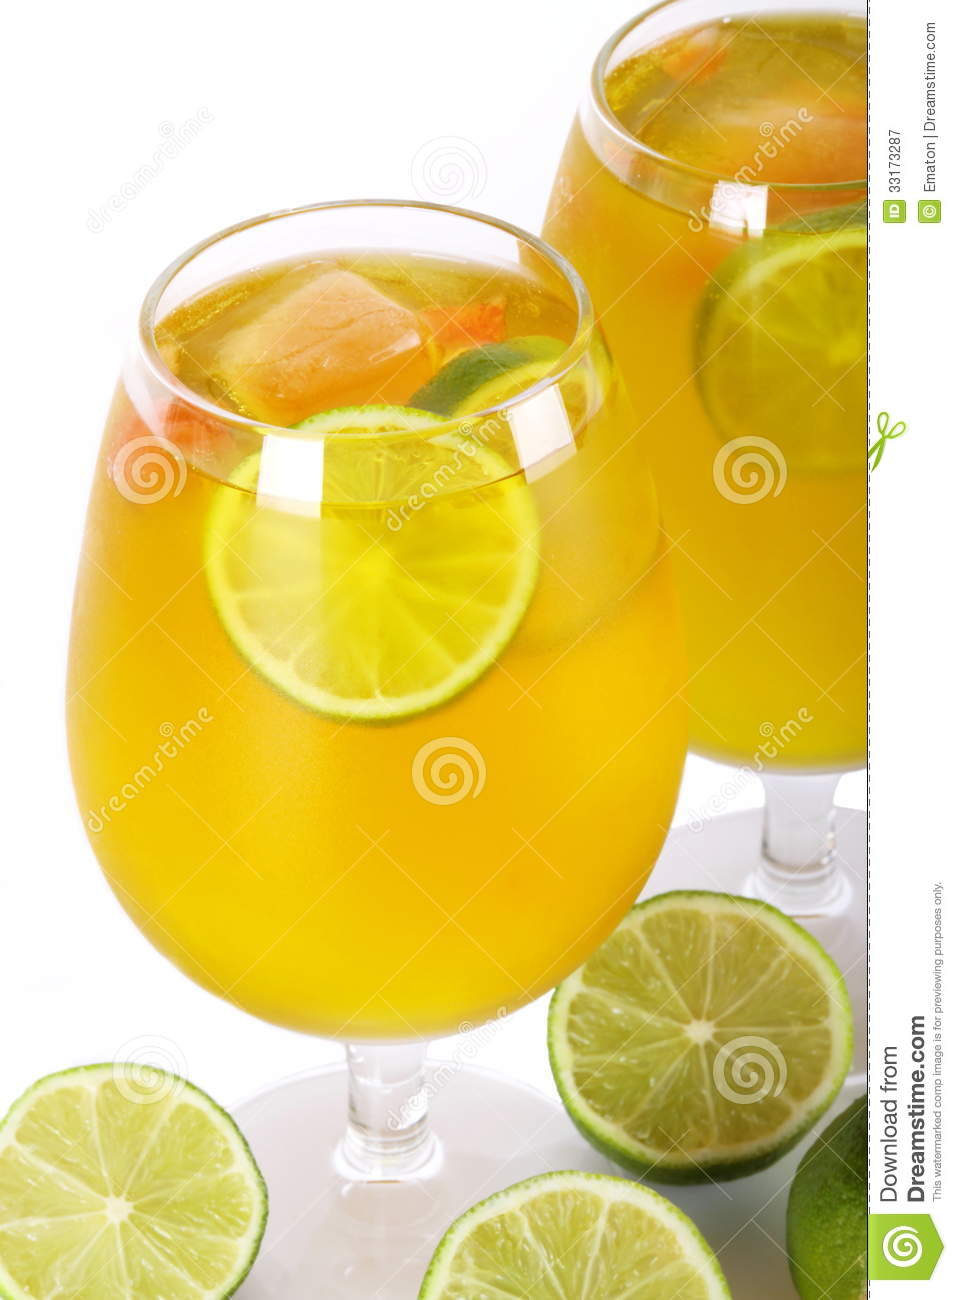 Citrus Cocktail With Lime Royalty Free Stock Photography - Image ...